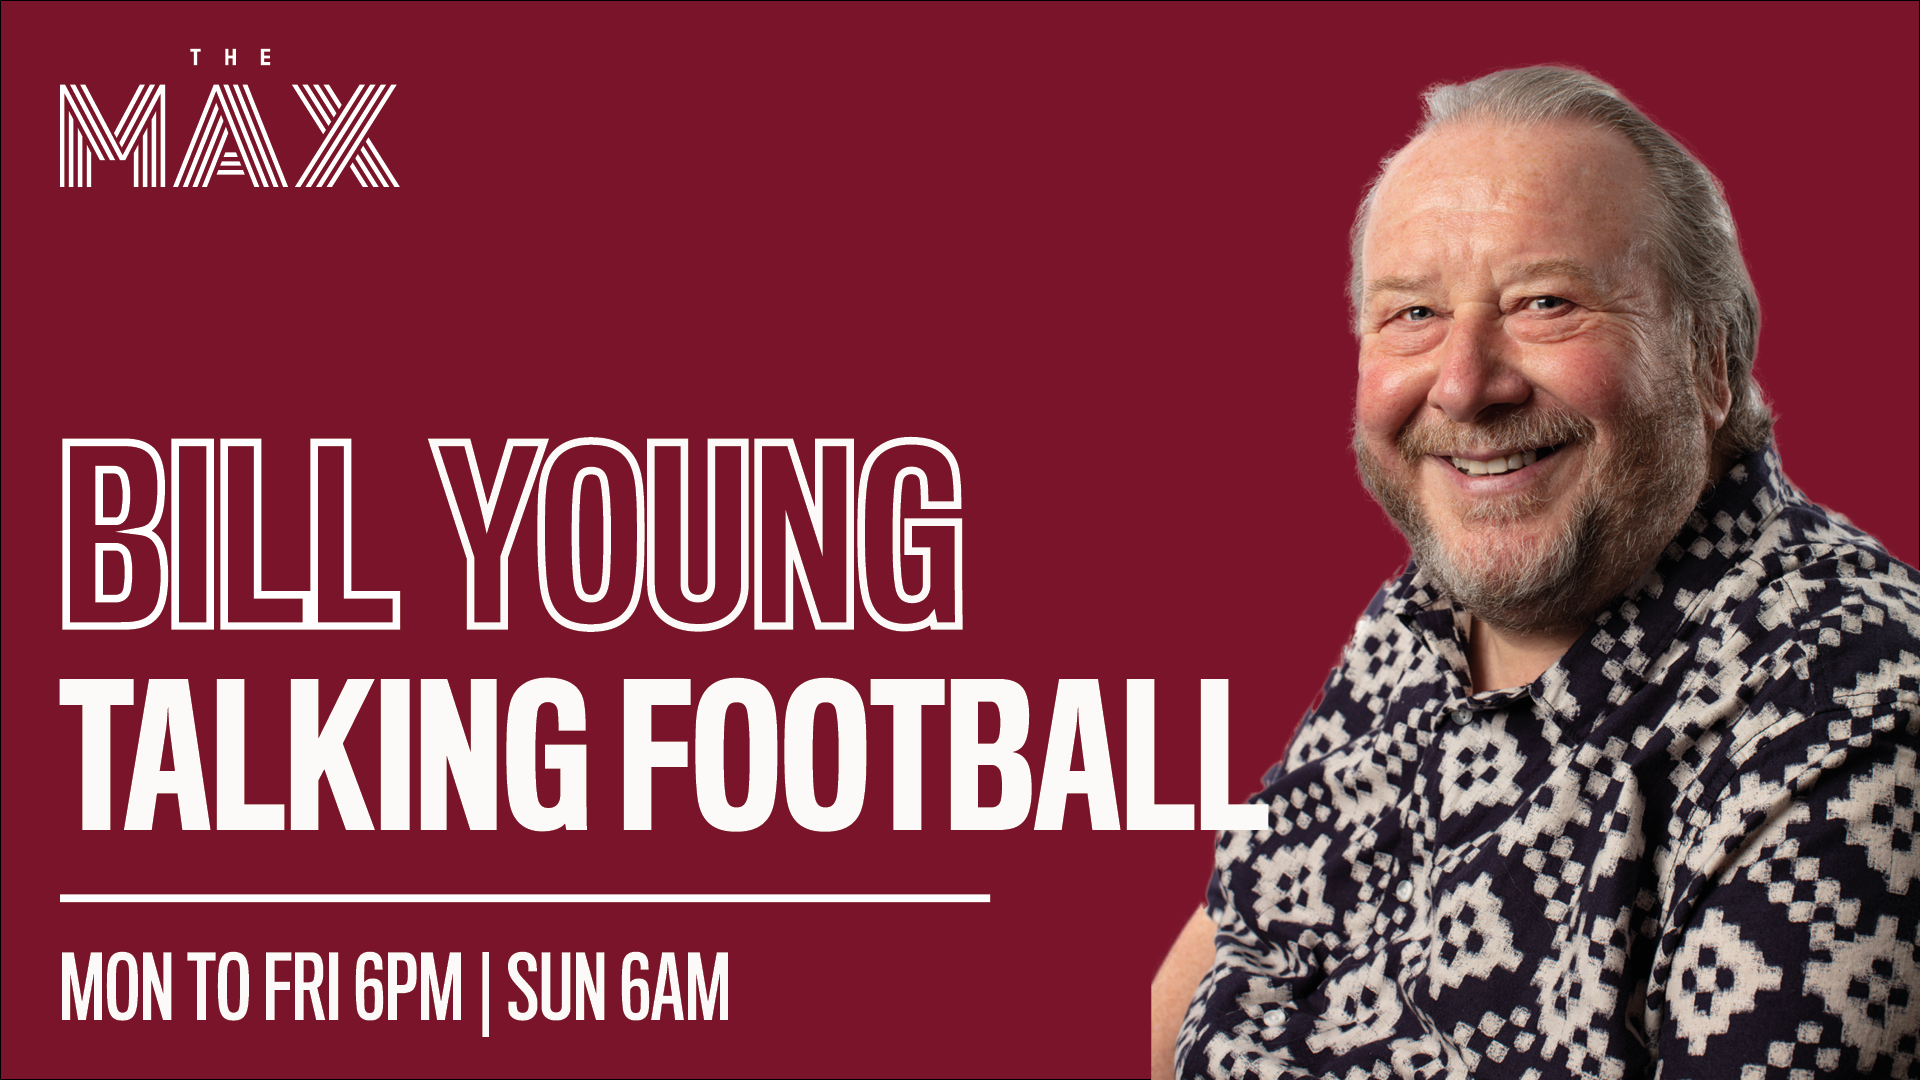 Talking Football with Bill Young - Monday 22nd February